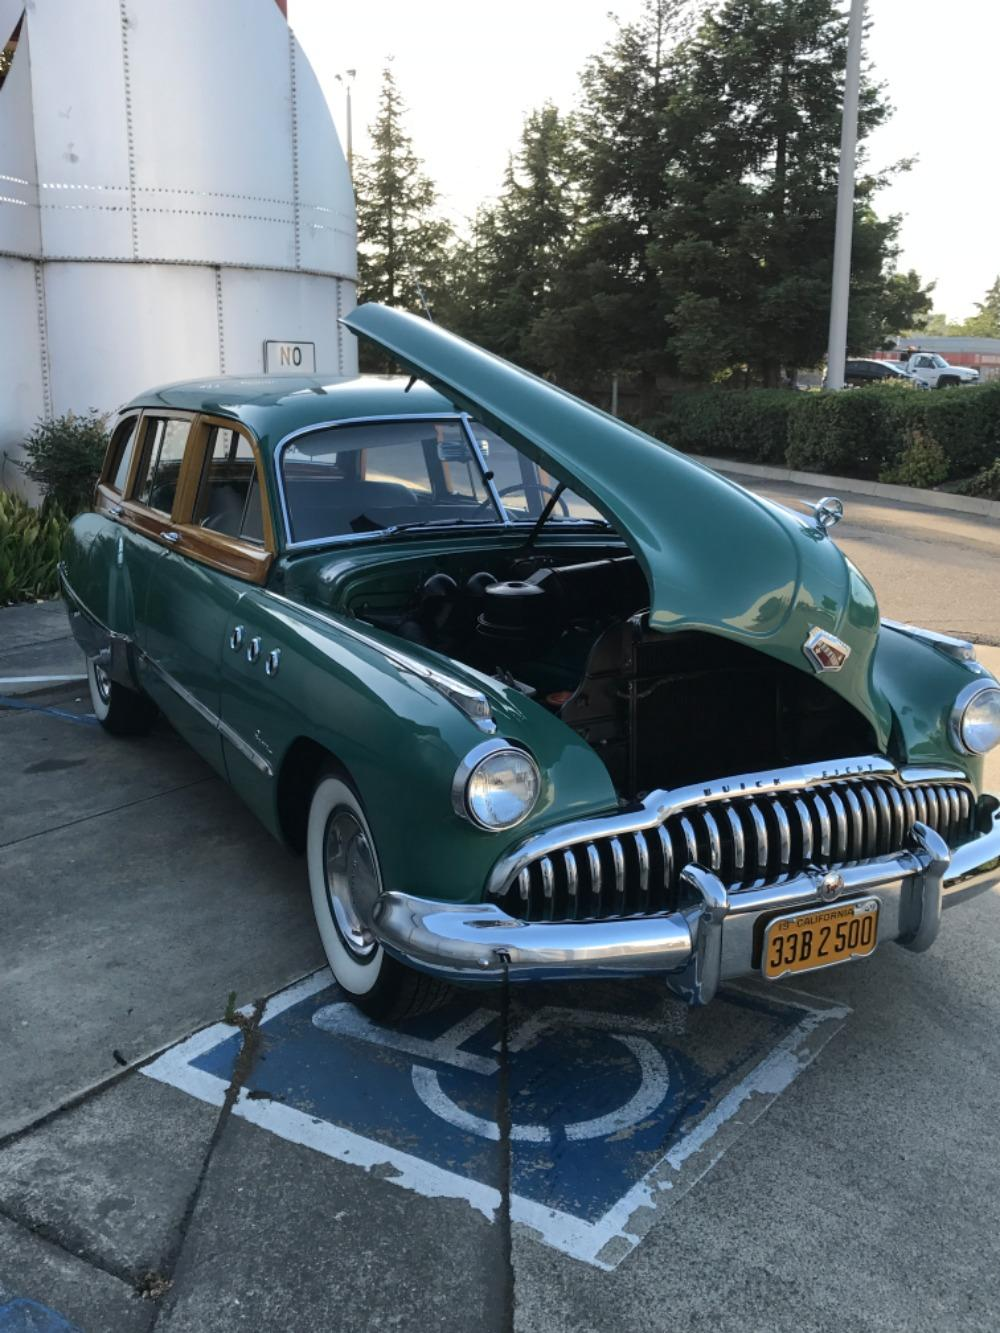 1949 Buick Series 50 -RARE WOODY WAGON- ONLY 653 BUILT-Super Estate Wagon Stock # 849CAMK for sale near Mundelein, IL | IL Buick Dealer #47